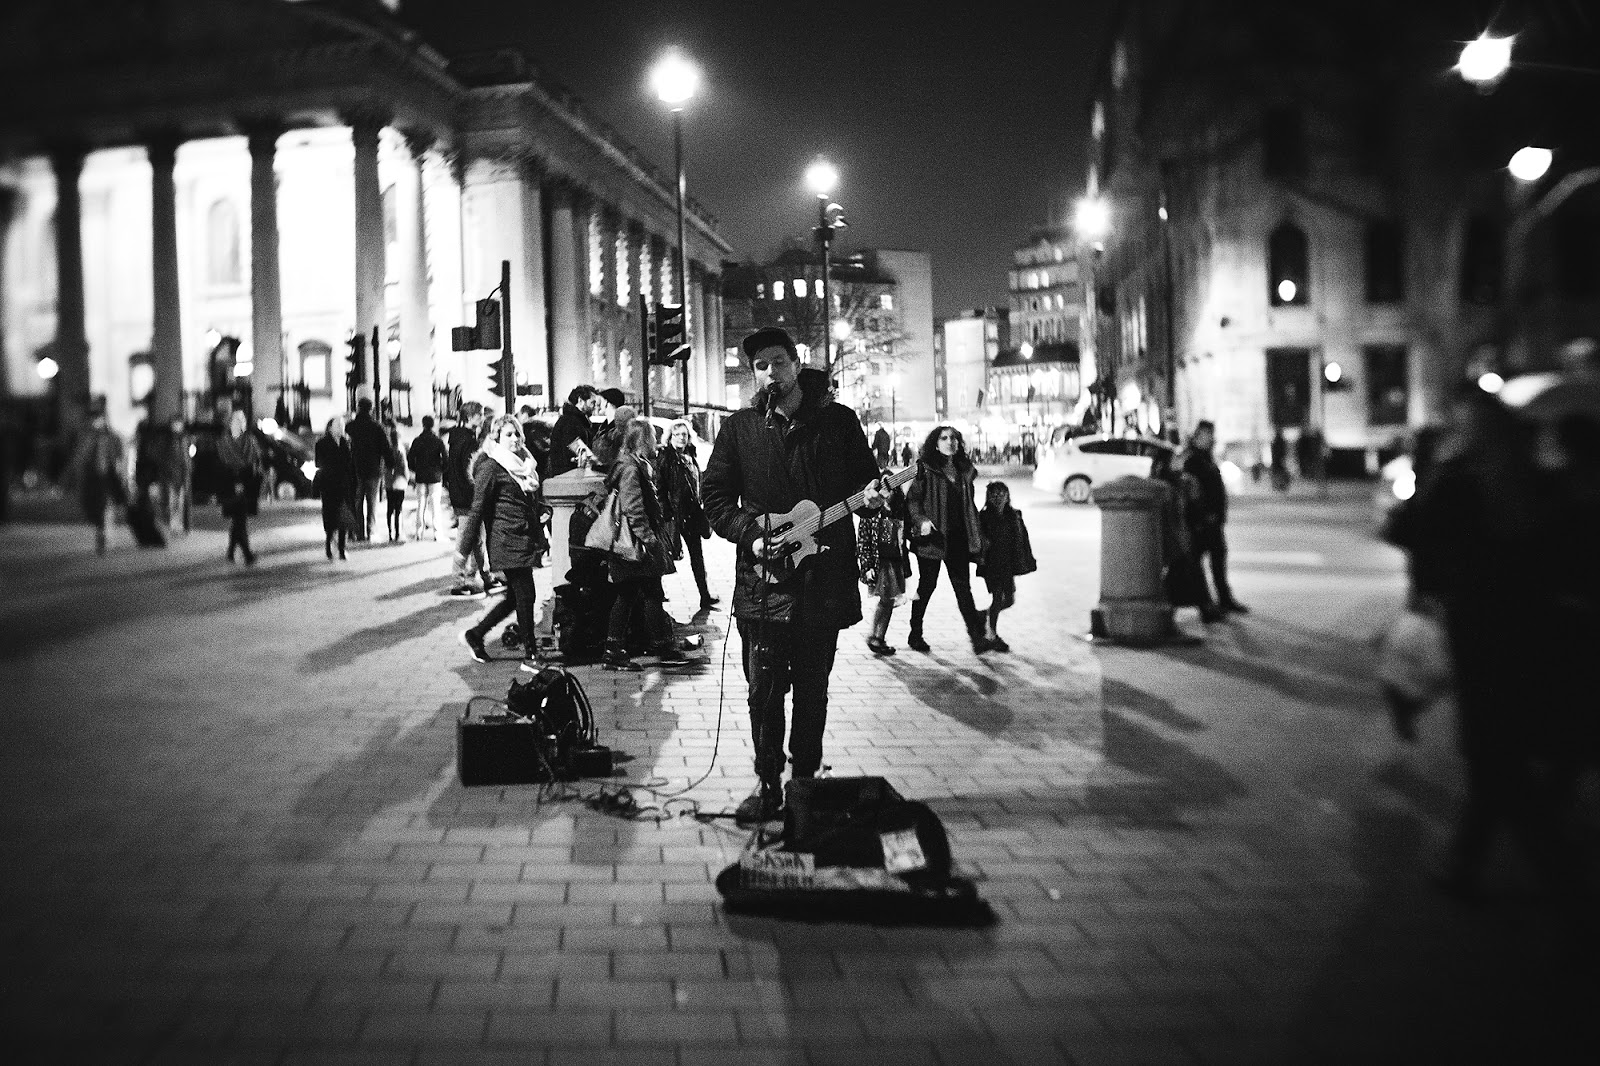 Lensbaby trio image of a street artist at Trafalgar Square in London by Willie Kers